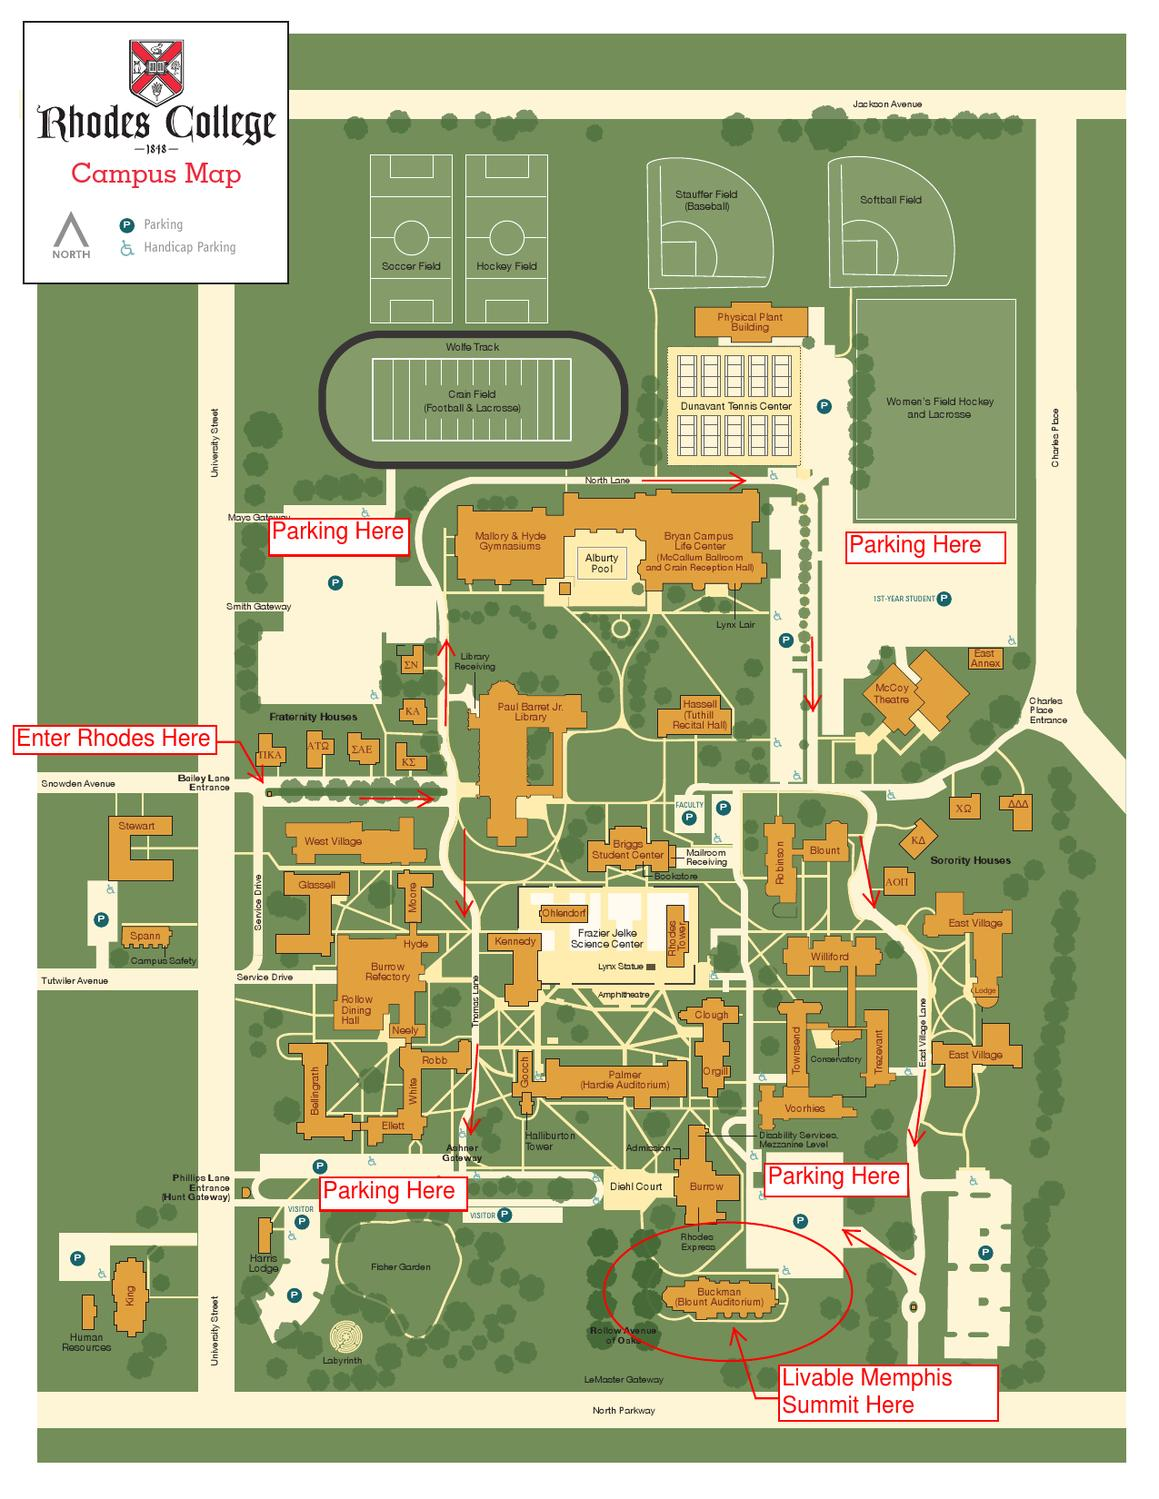 rhodes college campus map Rhodes College Campus Map And Directions By Livable Memphis Issuu rhodes college campus map